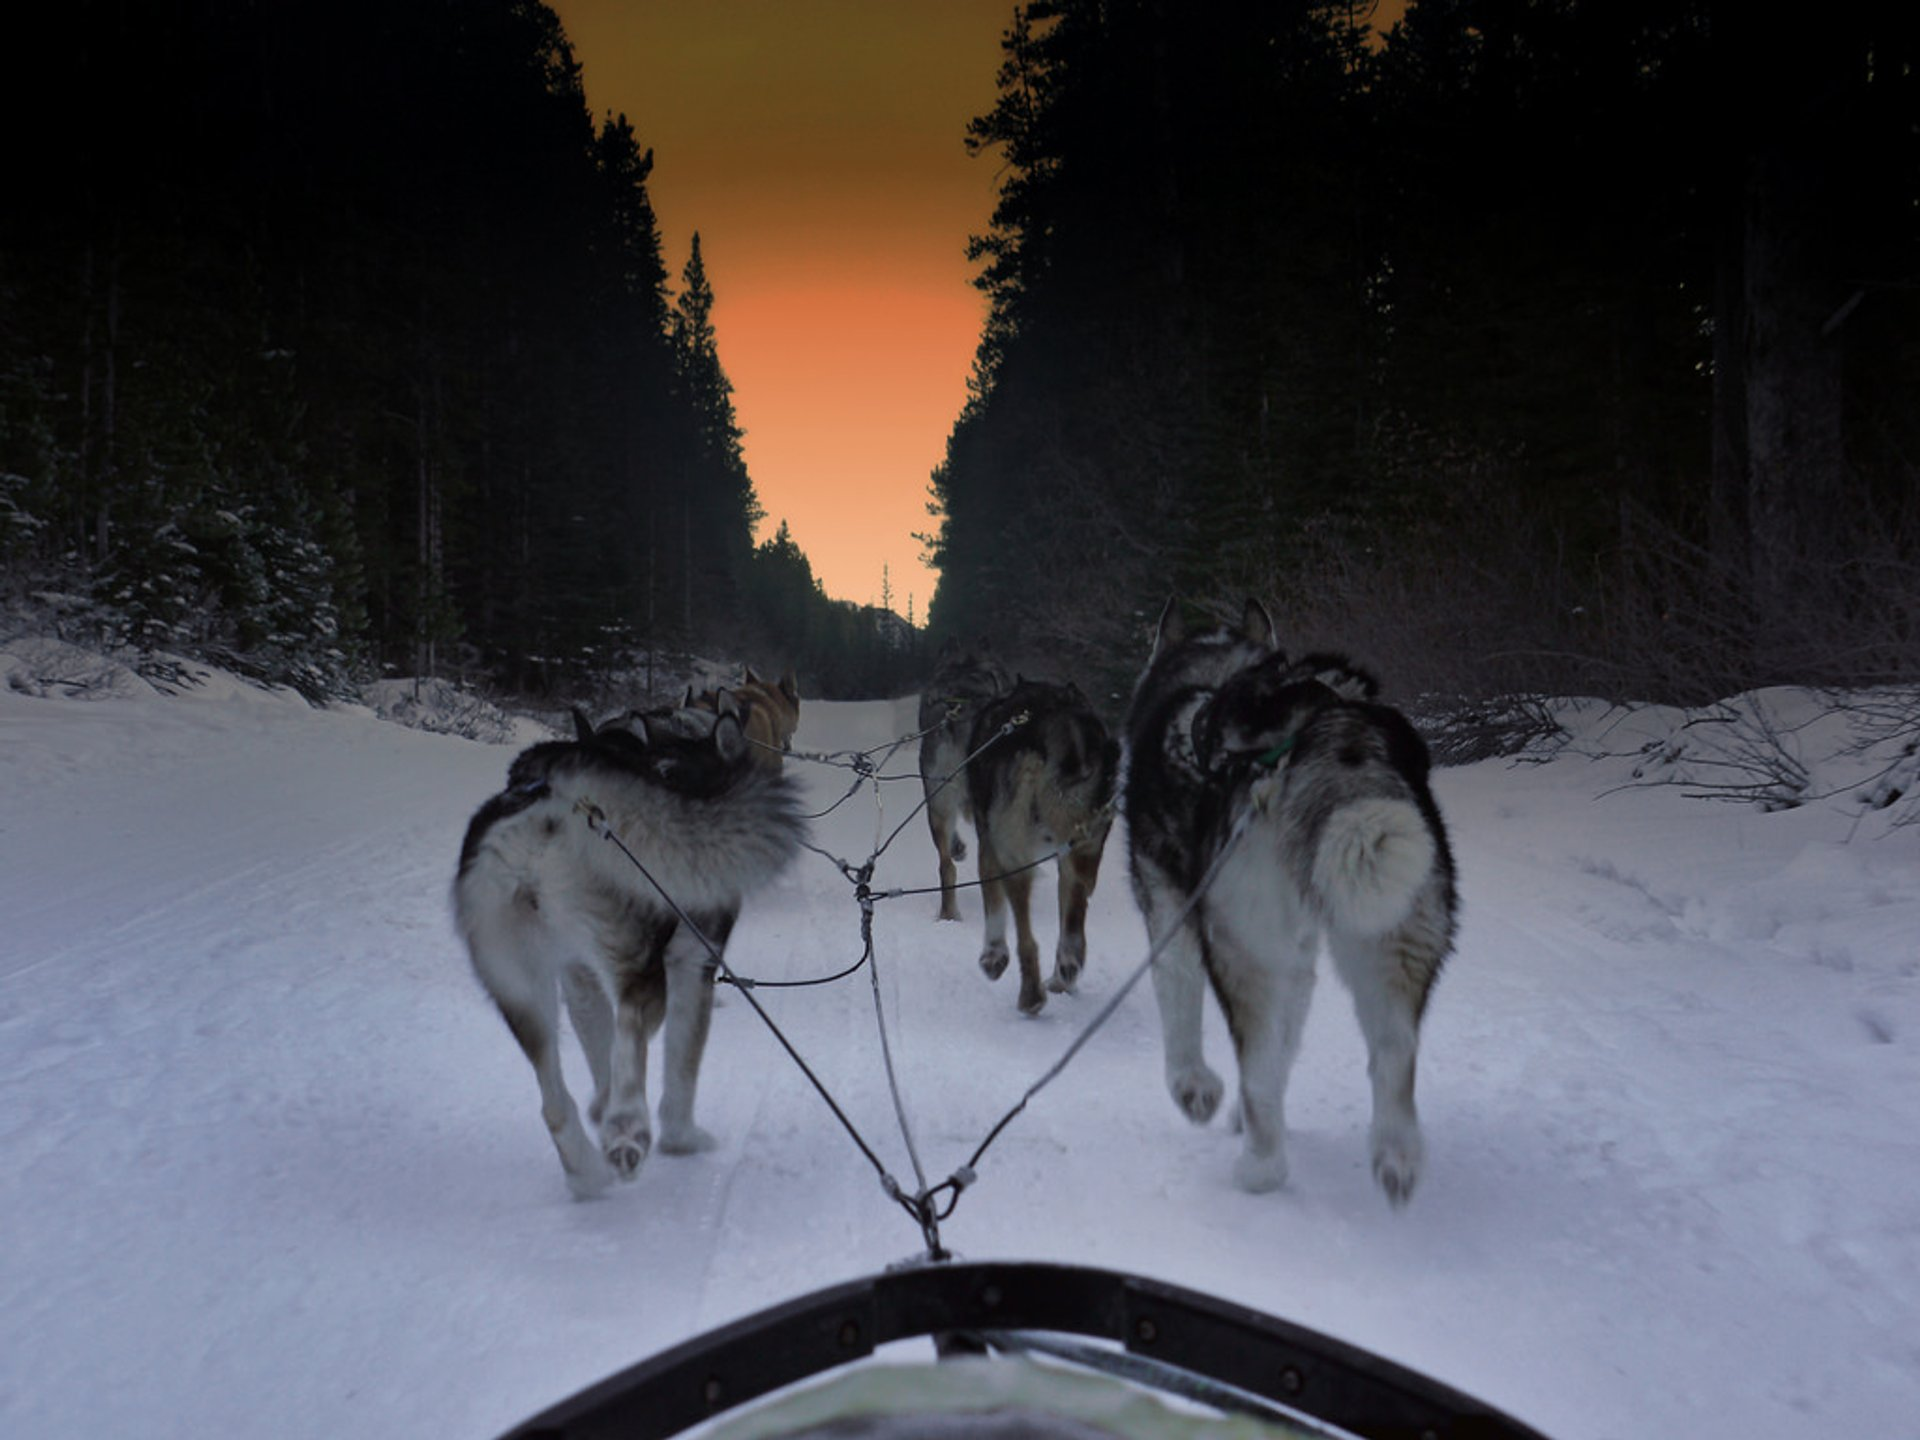 Dog Sledding in Banff & Jasper National Parks - Best Season 2019